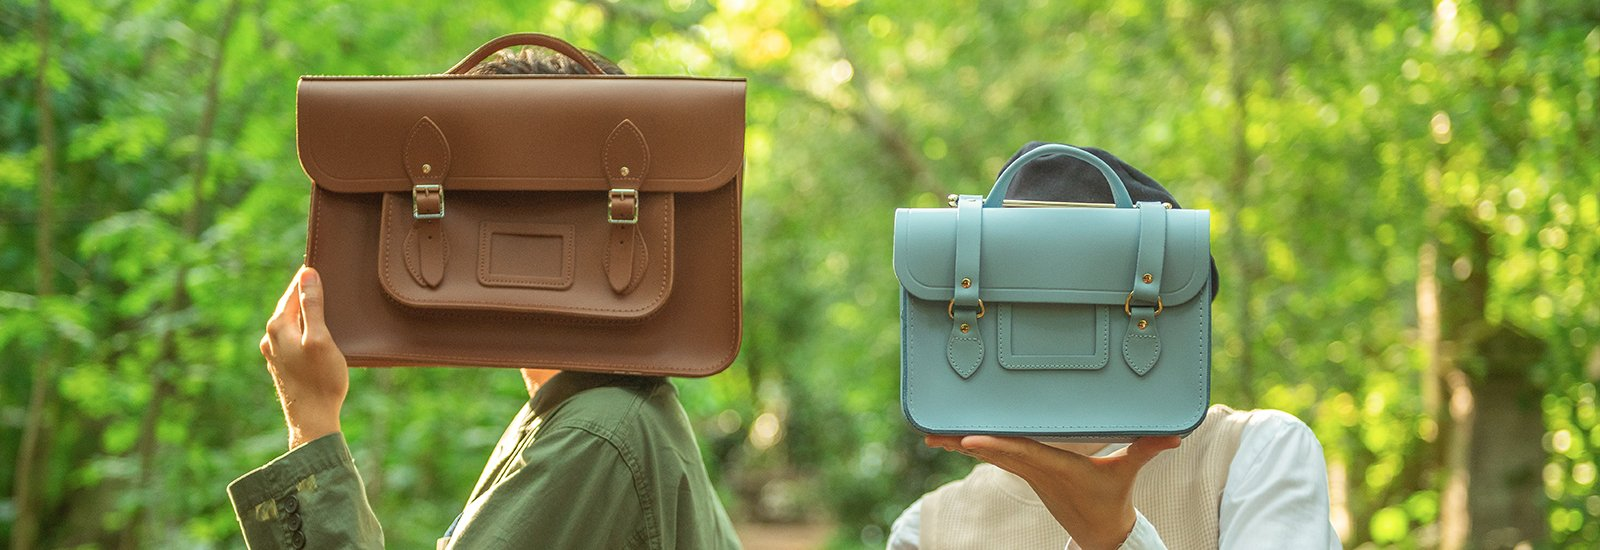 The European market potential for leather bags